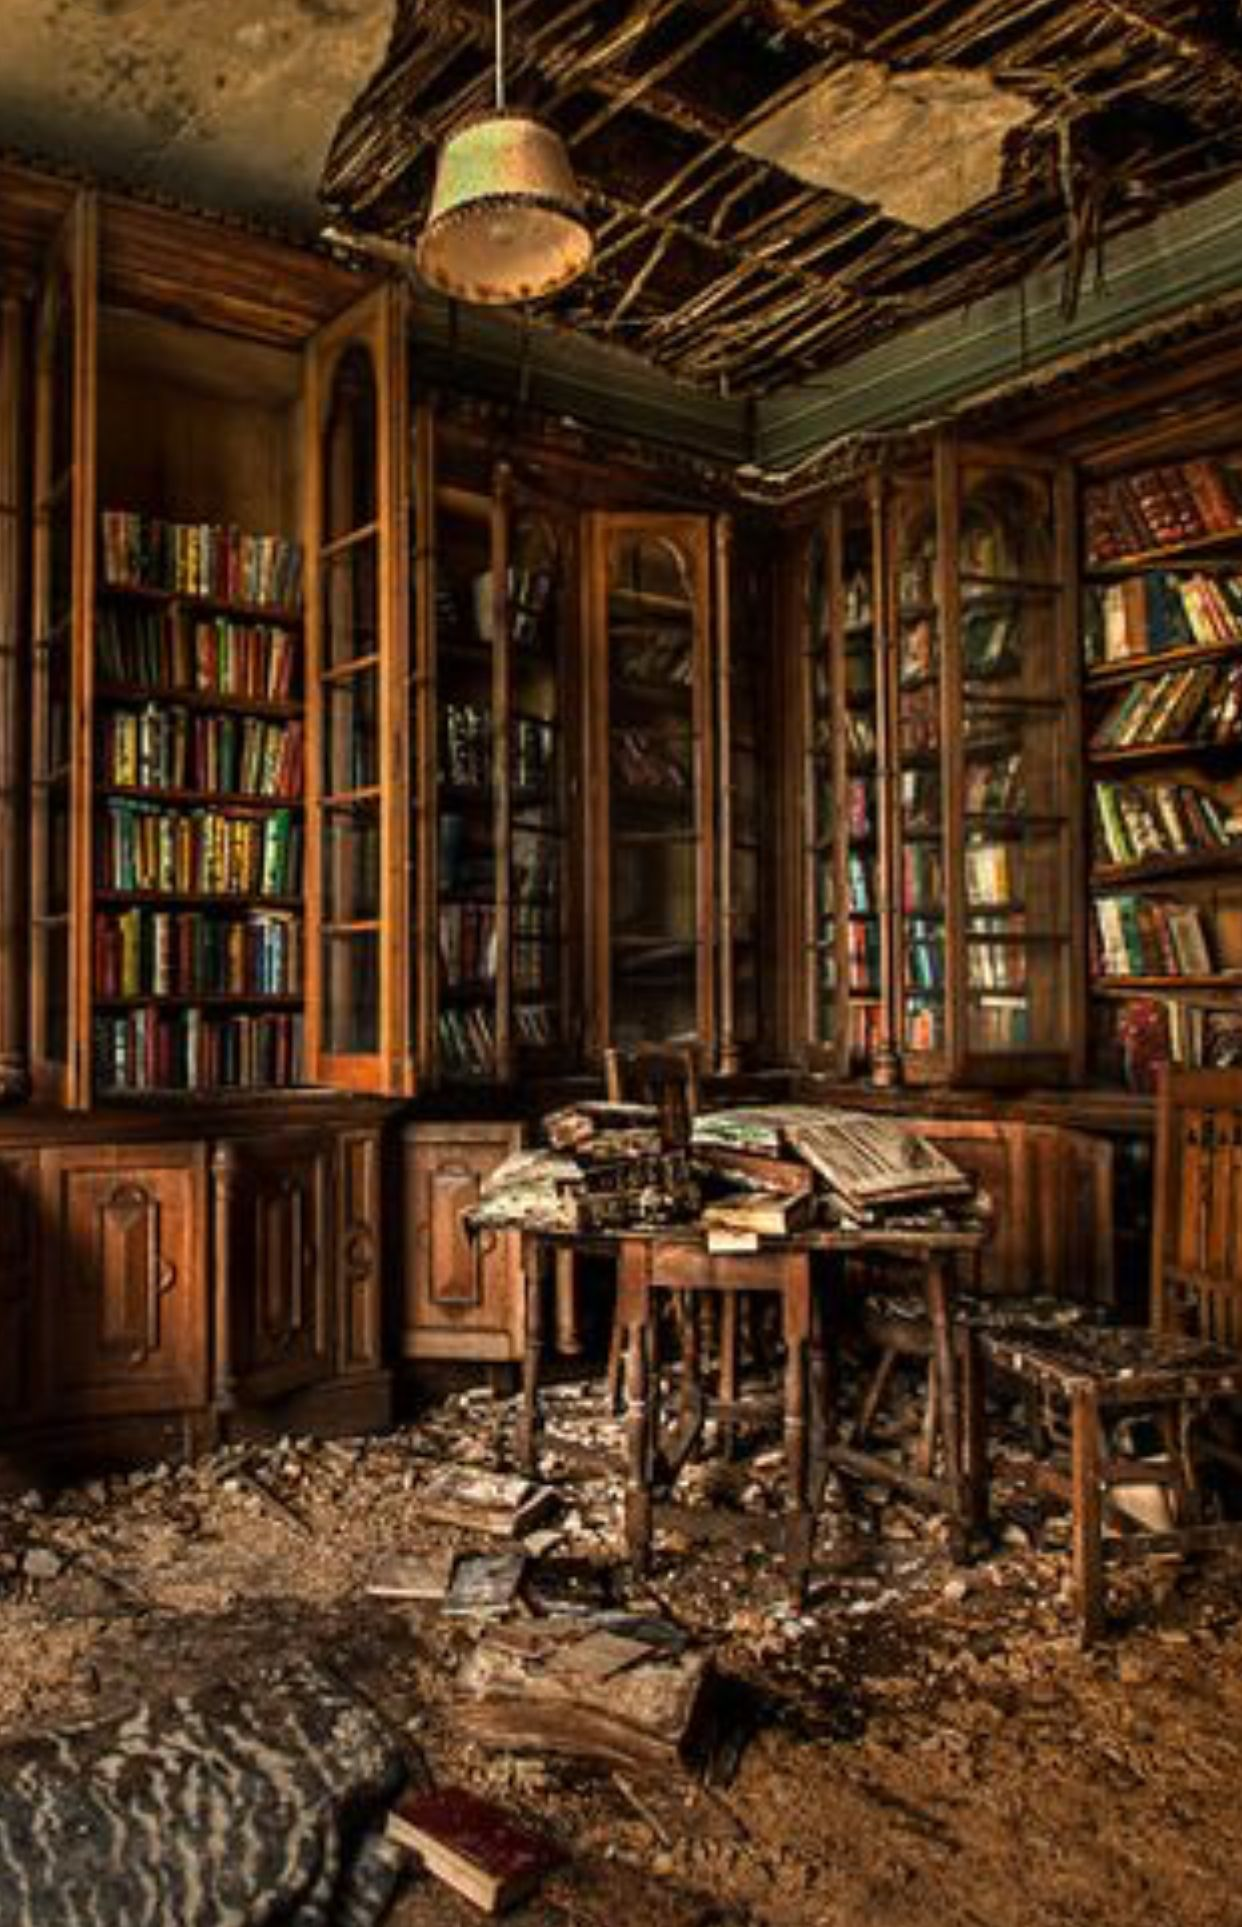 Pin By Shirley Stringer On Abandoned Places